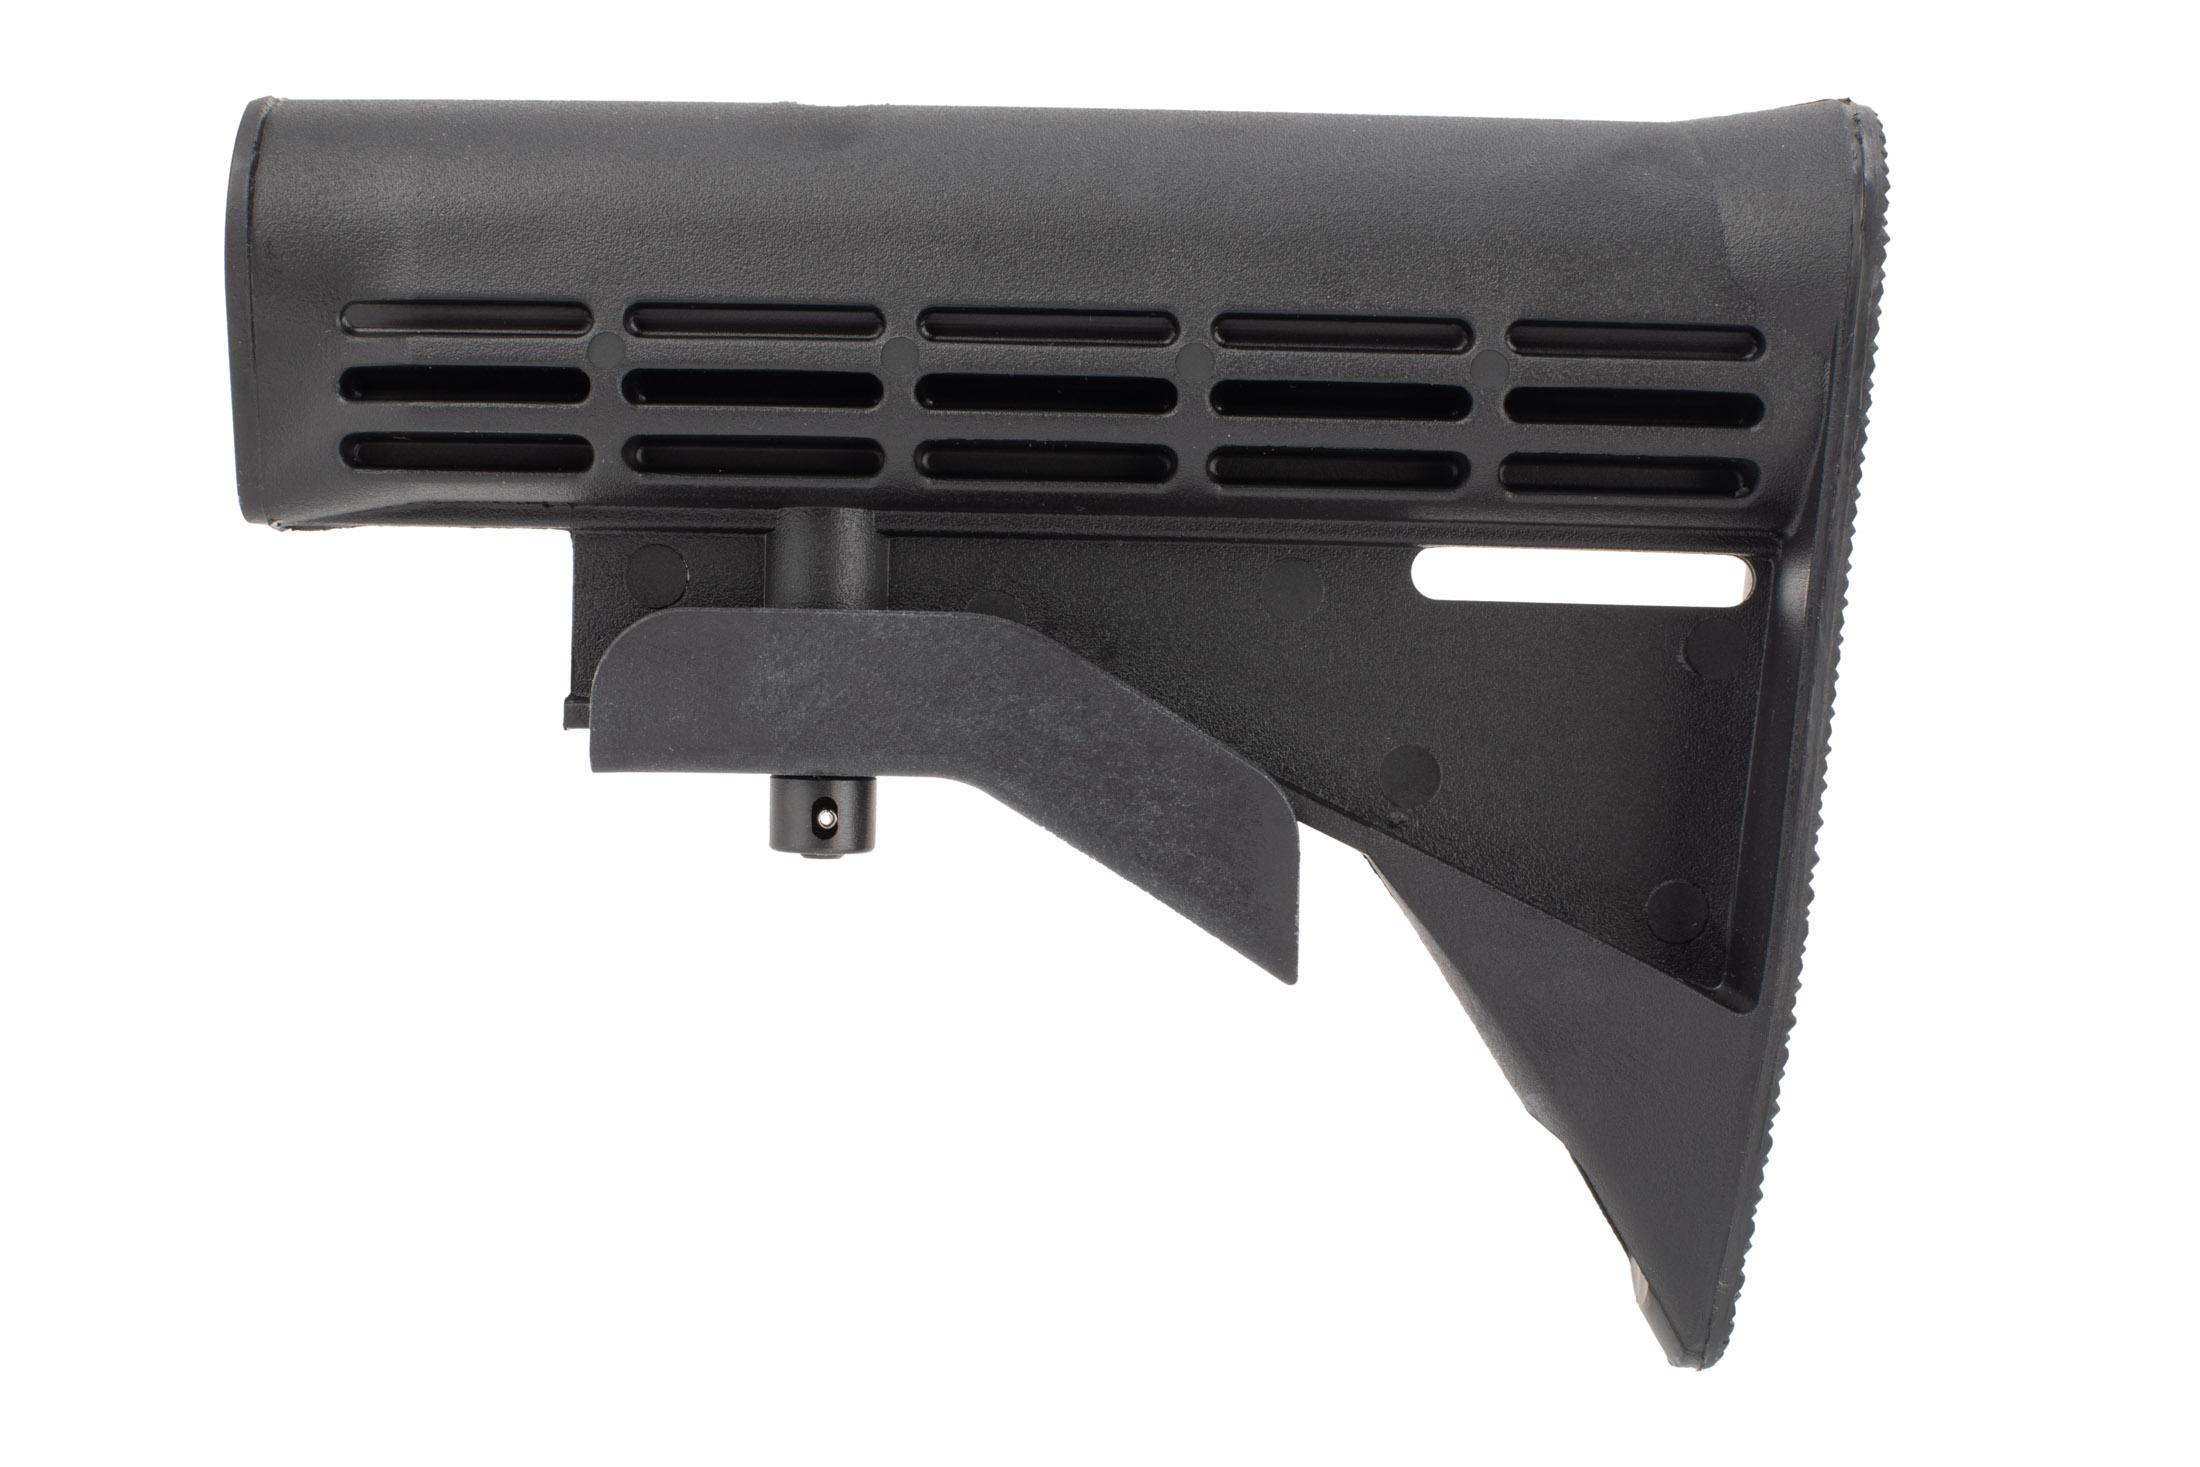 Radical Firearms lightweight MIL-SPEC stock for the AR-15 and AR-308 is impact resistant polymer